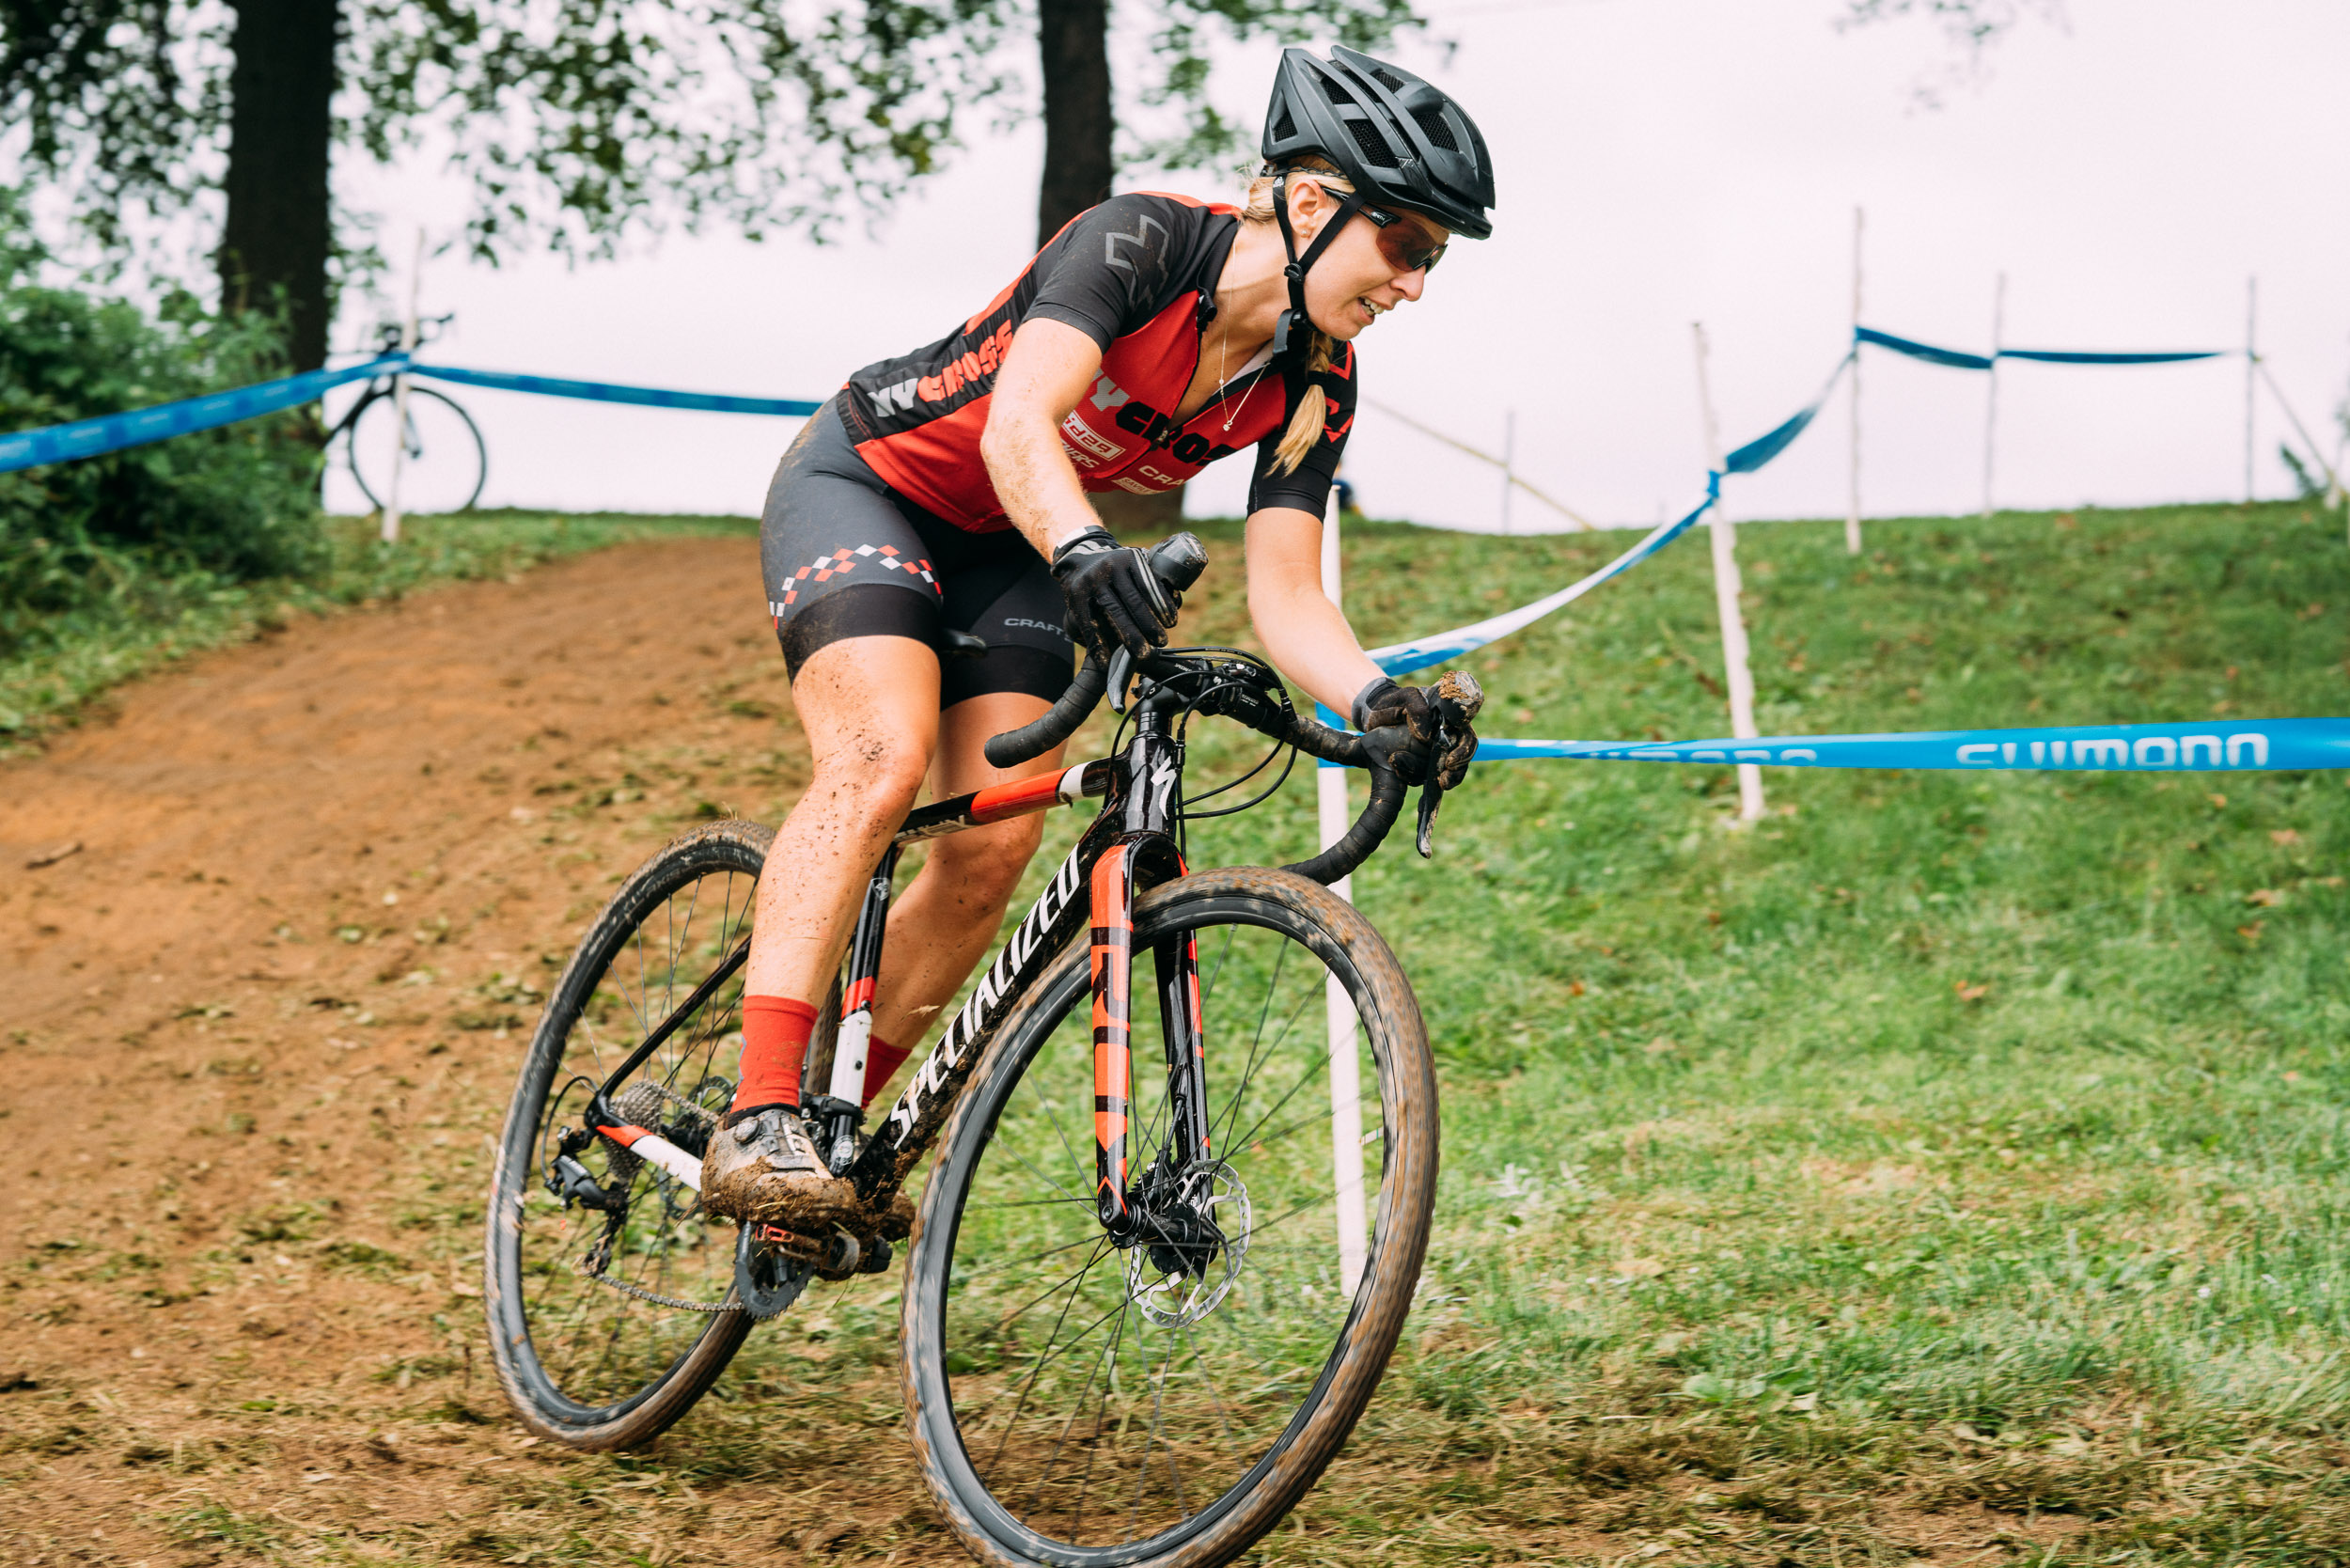 photo-rhetoric-to-be-determined-nittany-cyclocross-1052.jpg